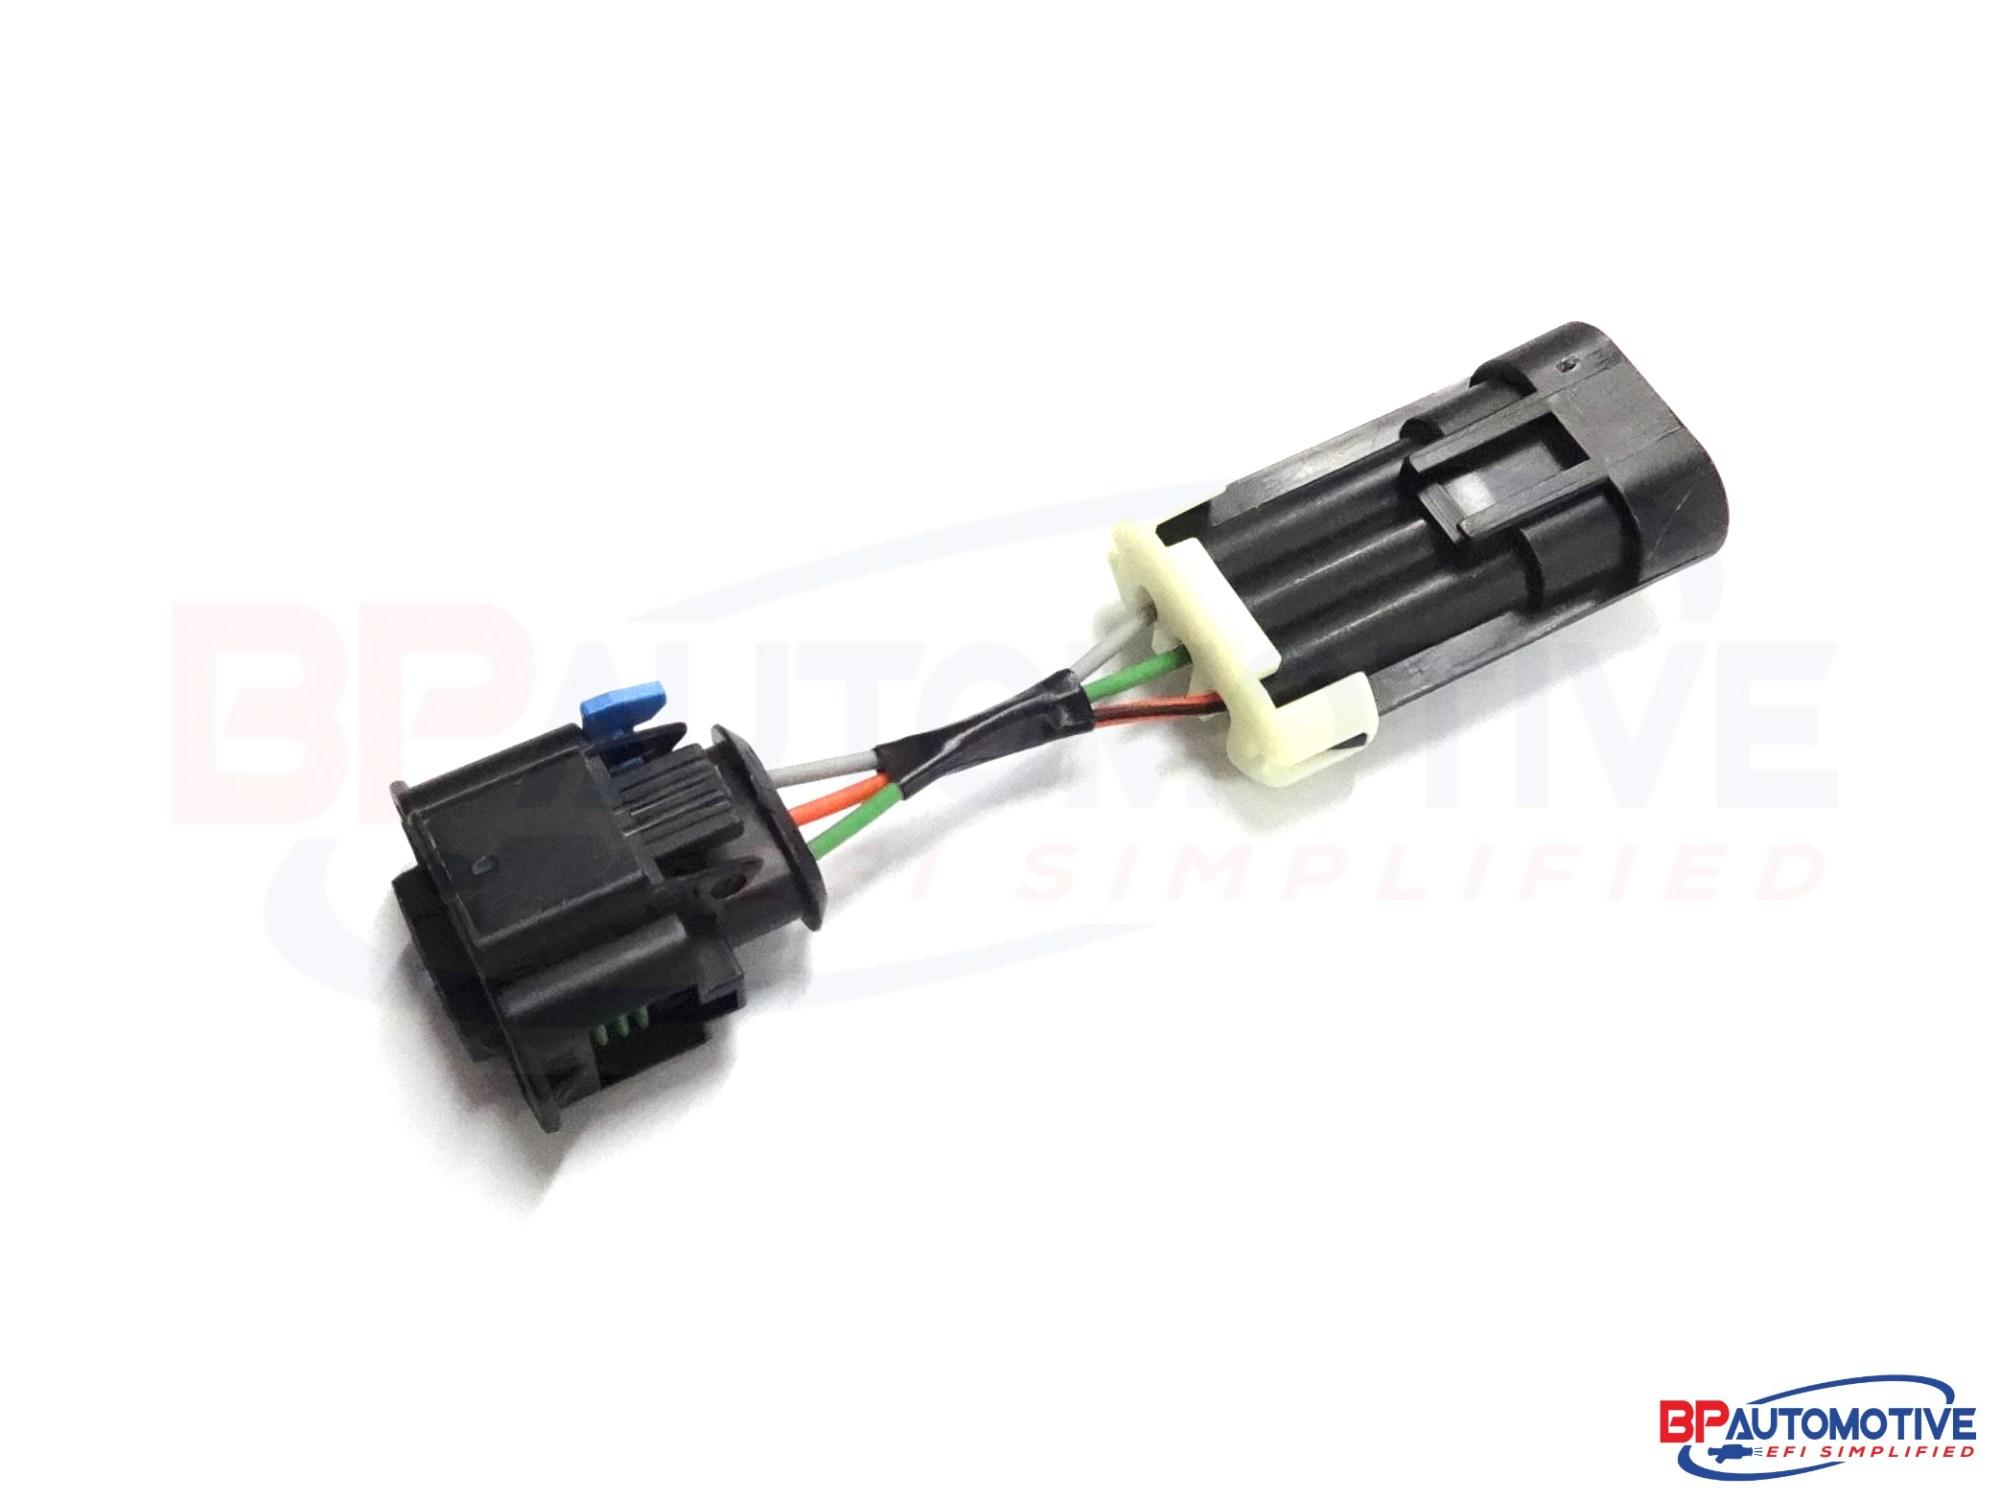 hight resolution of ls2 to ls3 map sensor adapter gm map sensor parts gm ls3 map sensor wiring diagram